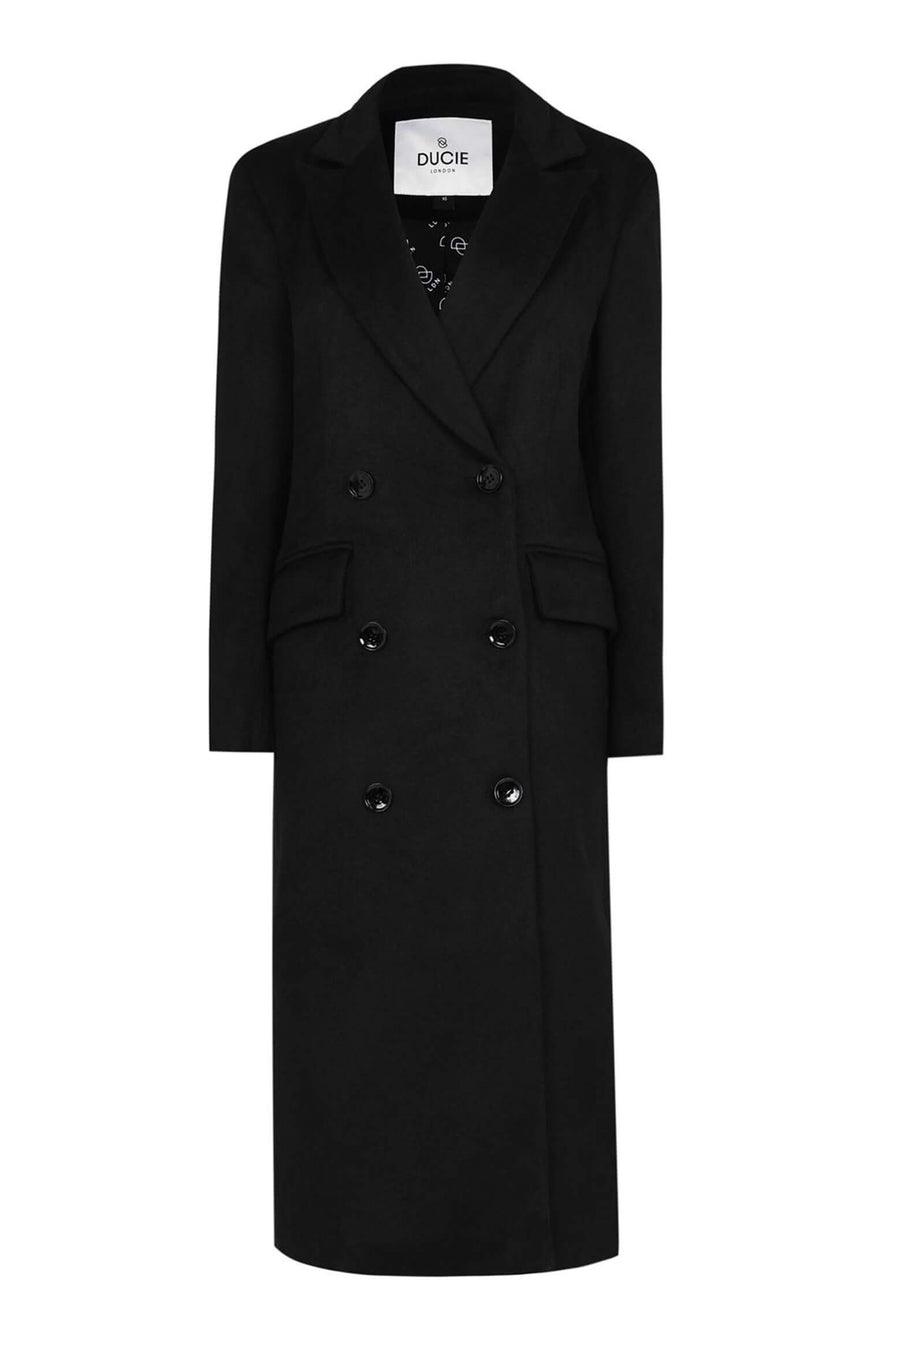 Ducie London Aggie Oversize Wool Coat in Black from The New Trend